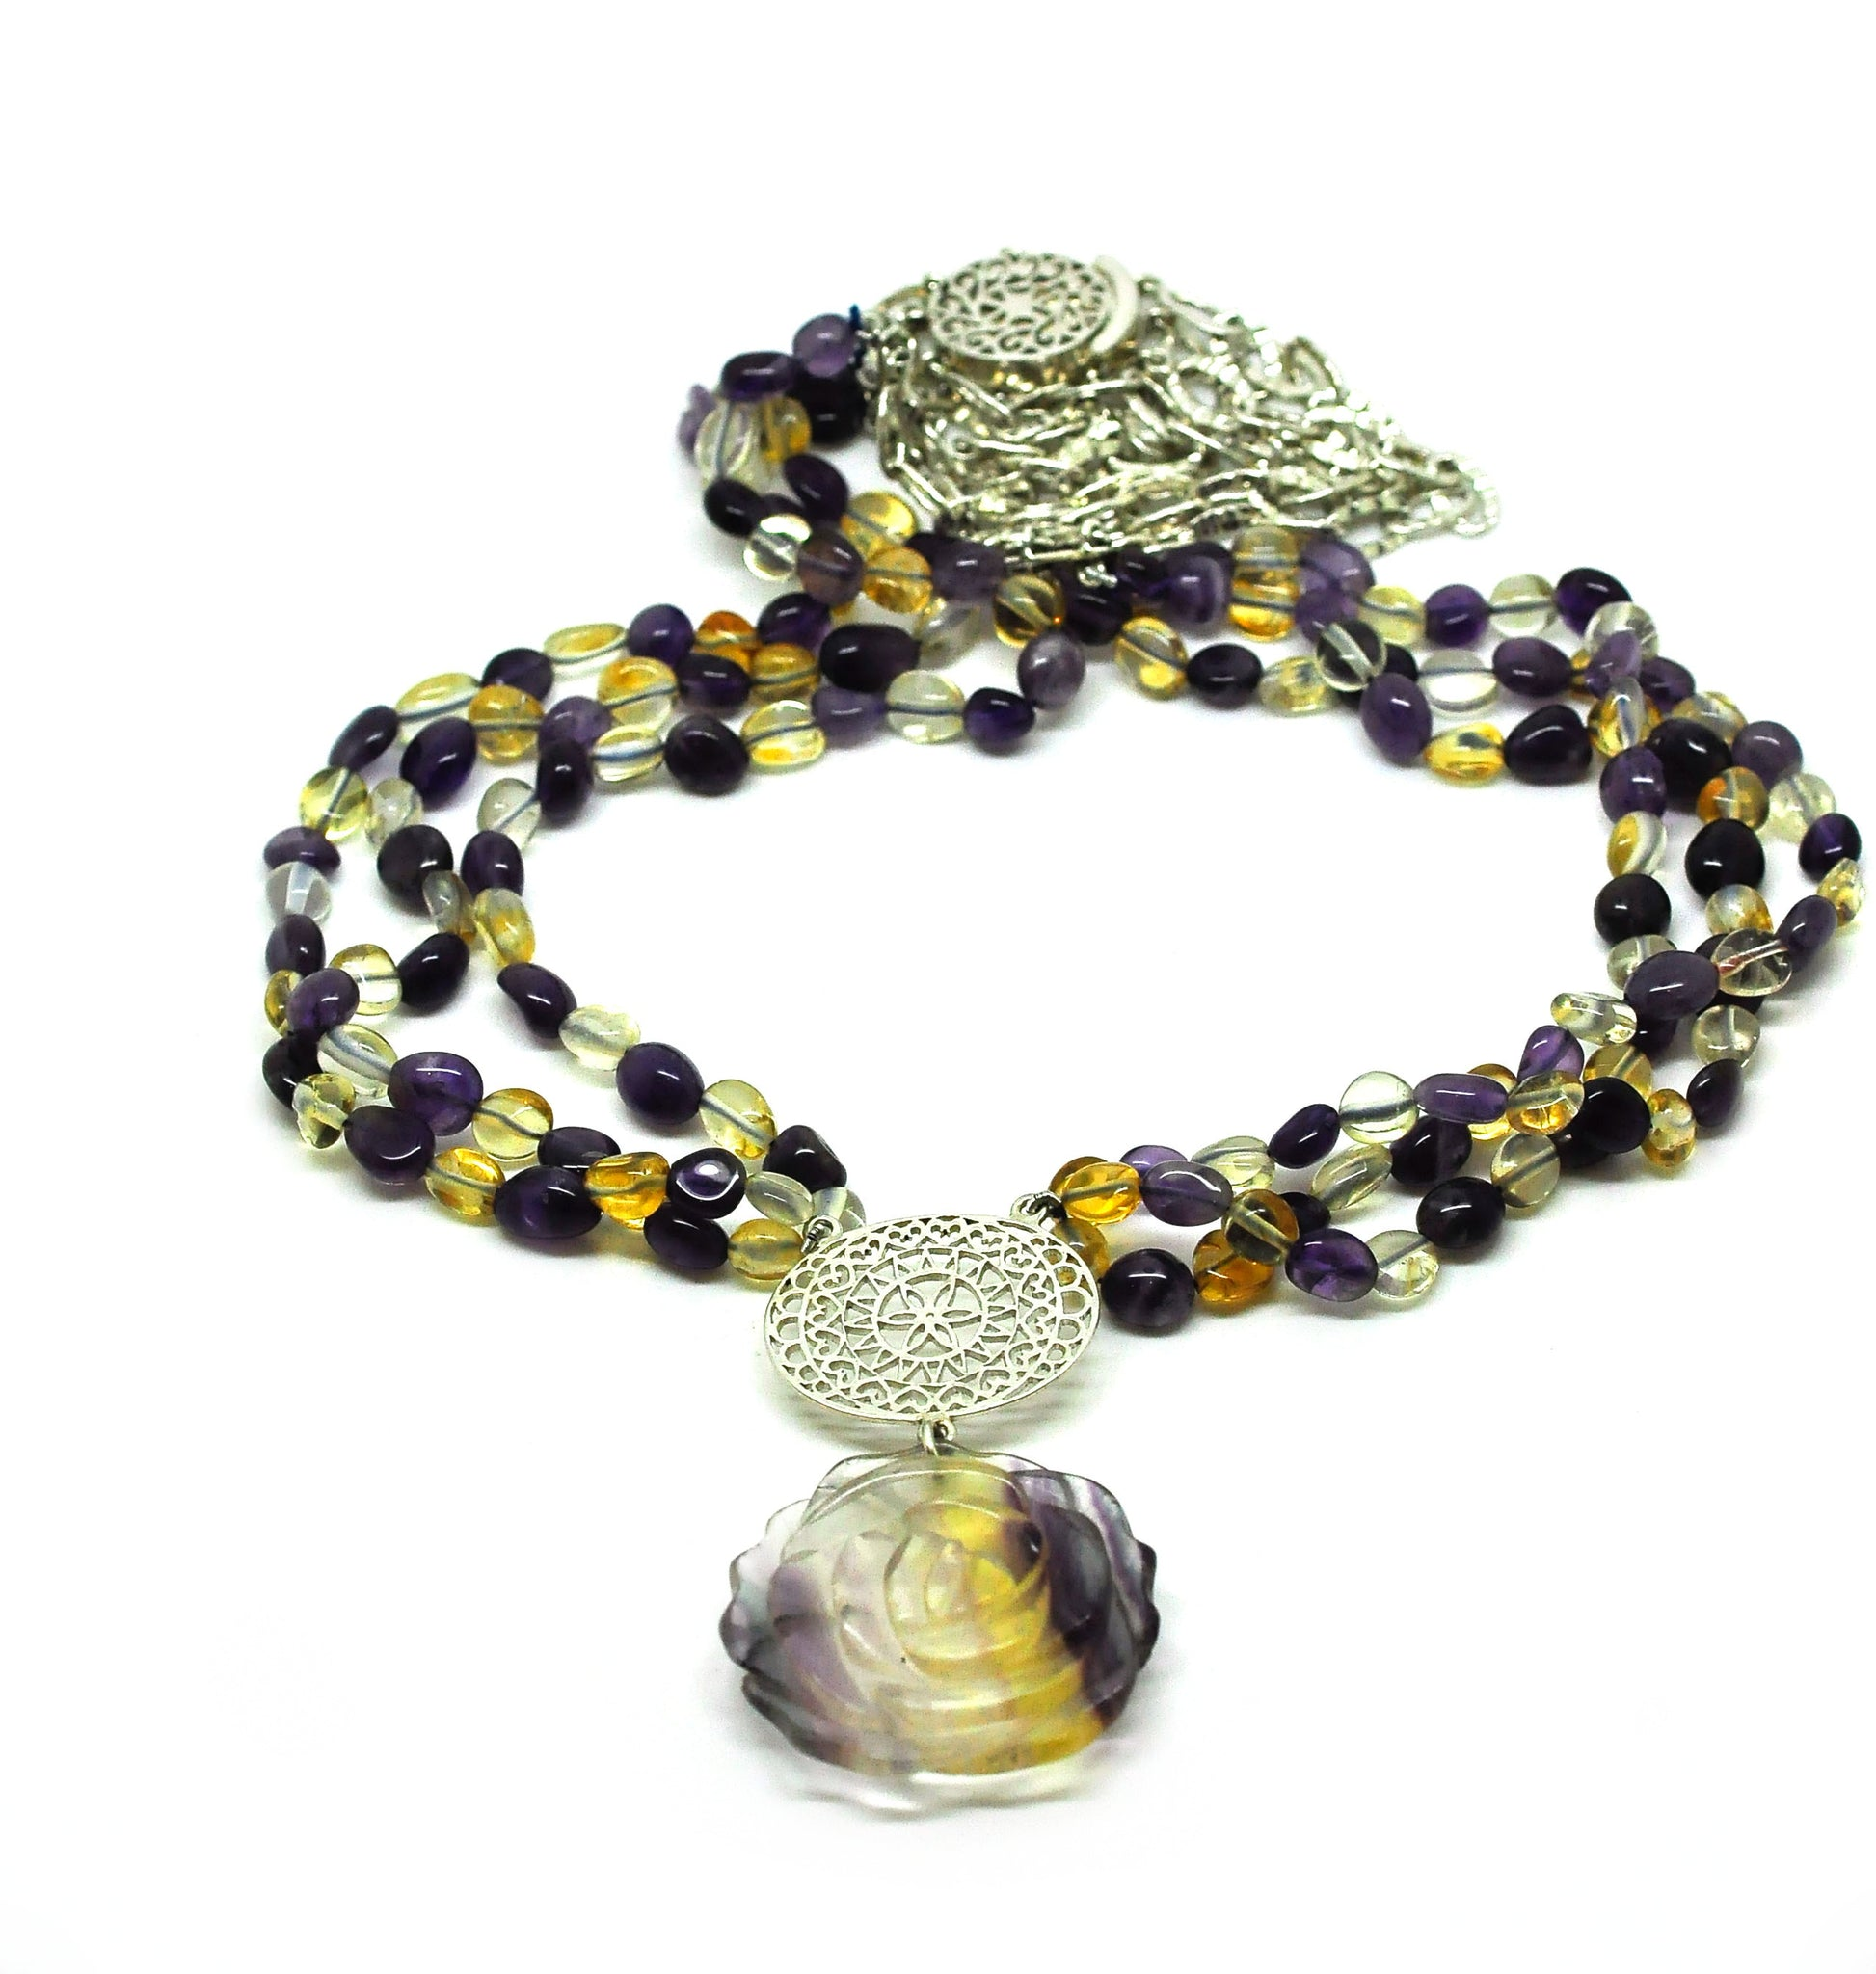 NEW - Citrine and Amethyst Necklace